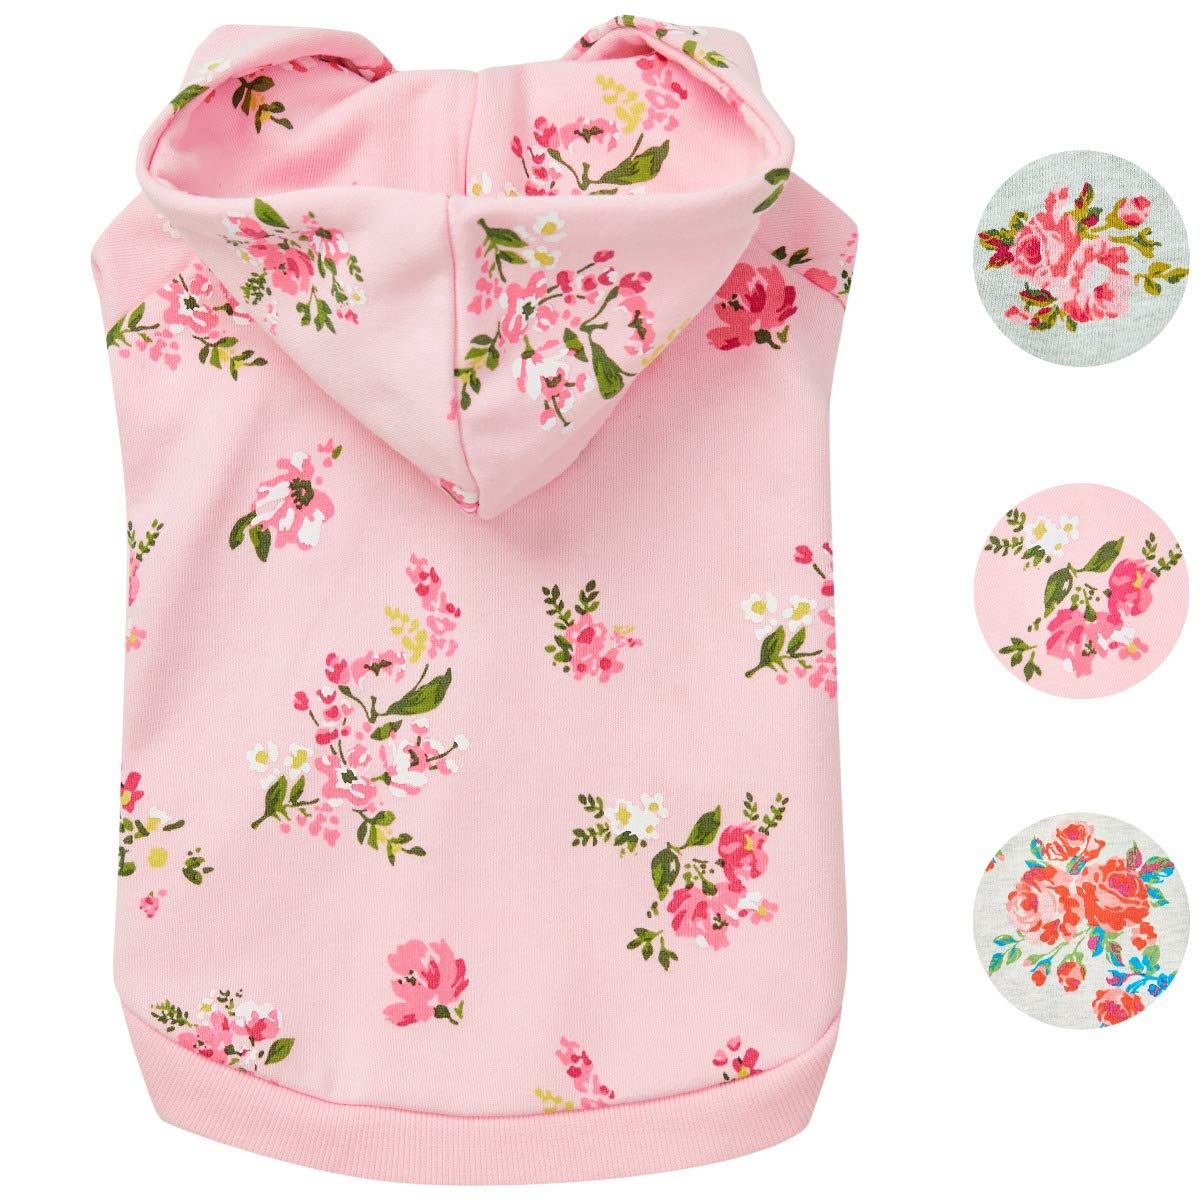 Blueberry Pet Spring Scent Inspired Daisy Flower Pullover Dog Hooded Sweatshirt in Baby Pink, Back Length 10'', Pack of 1 Clothes for Dogs by Blueberry Pet